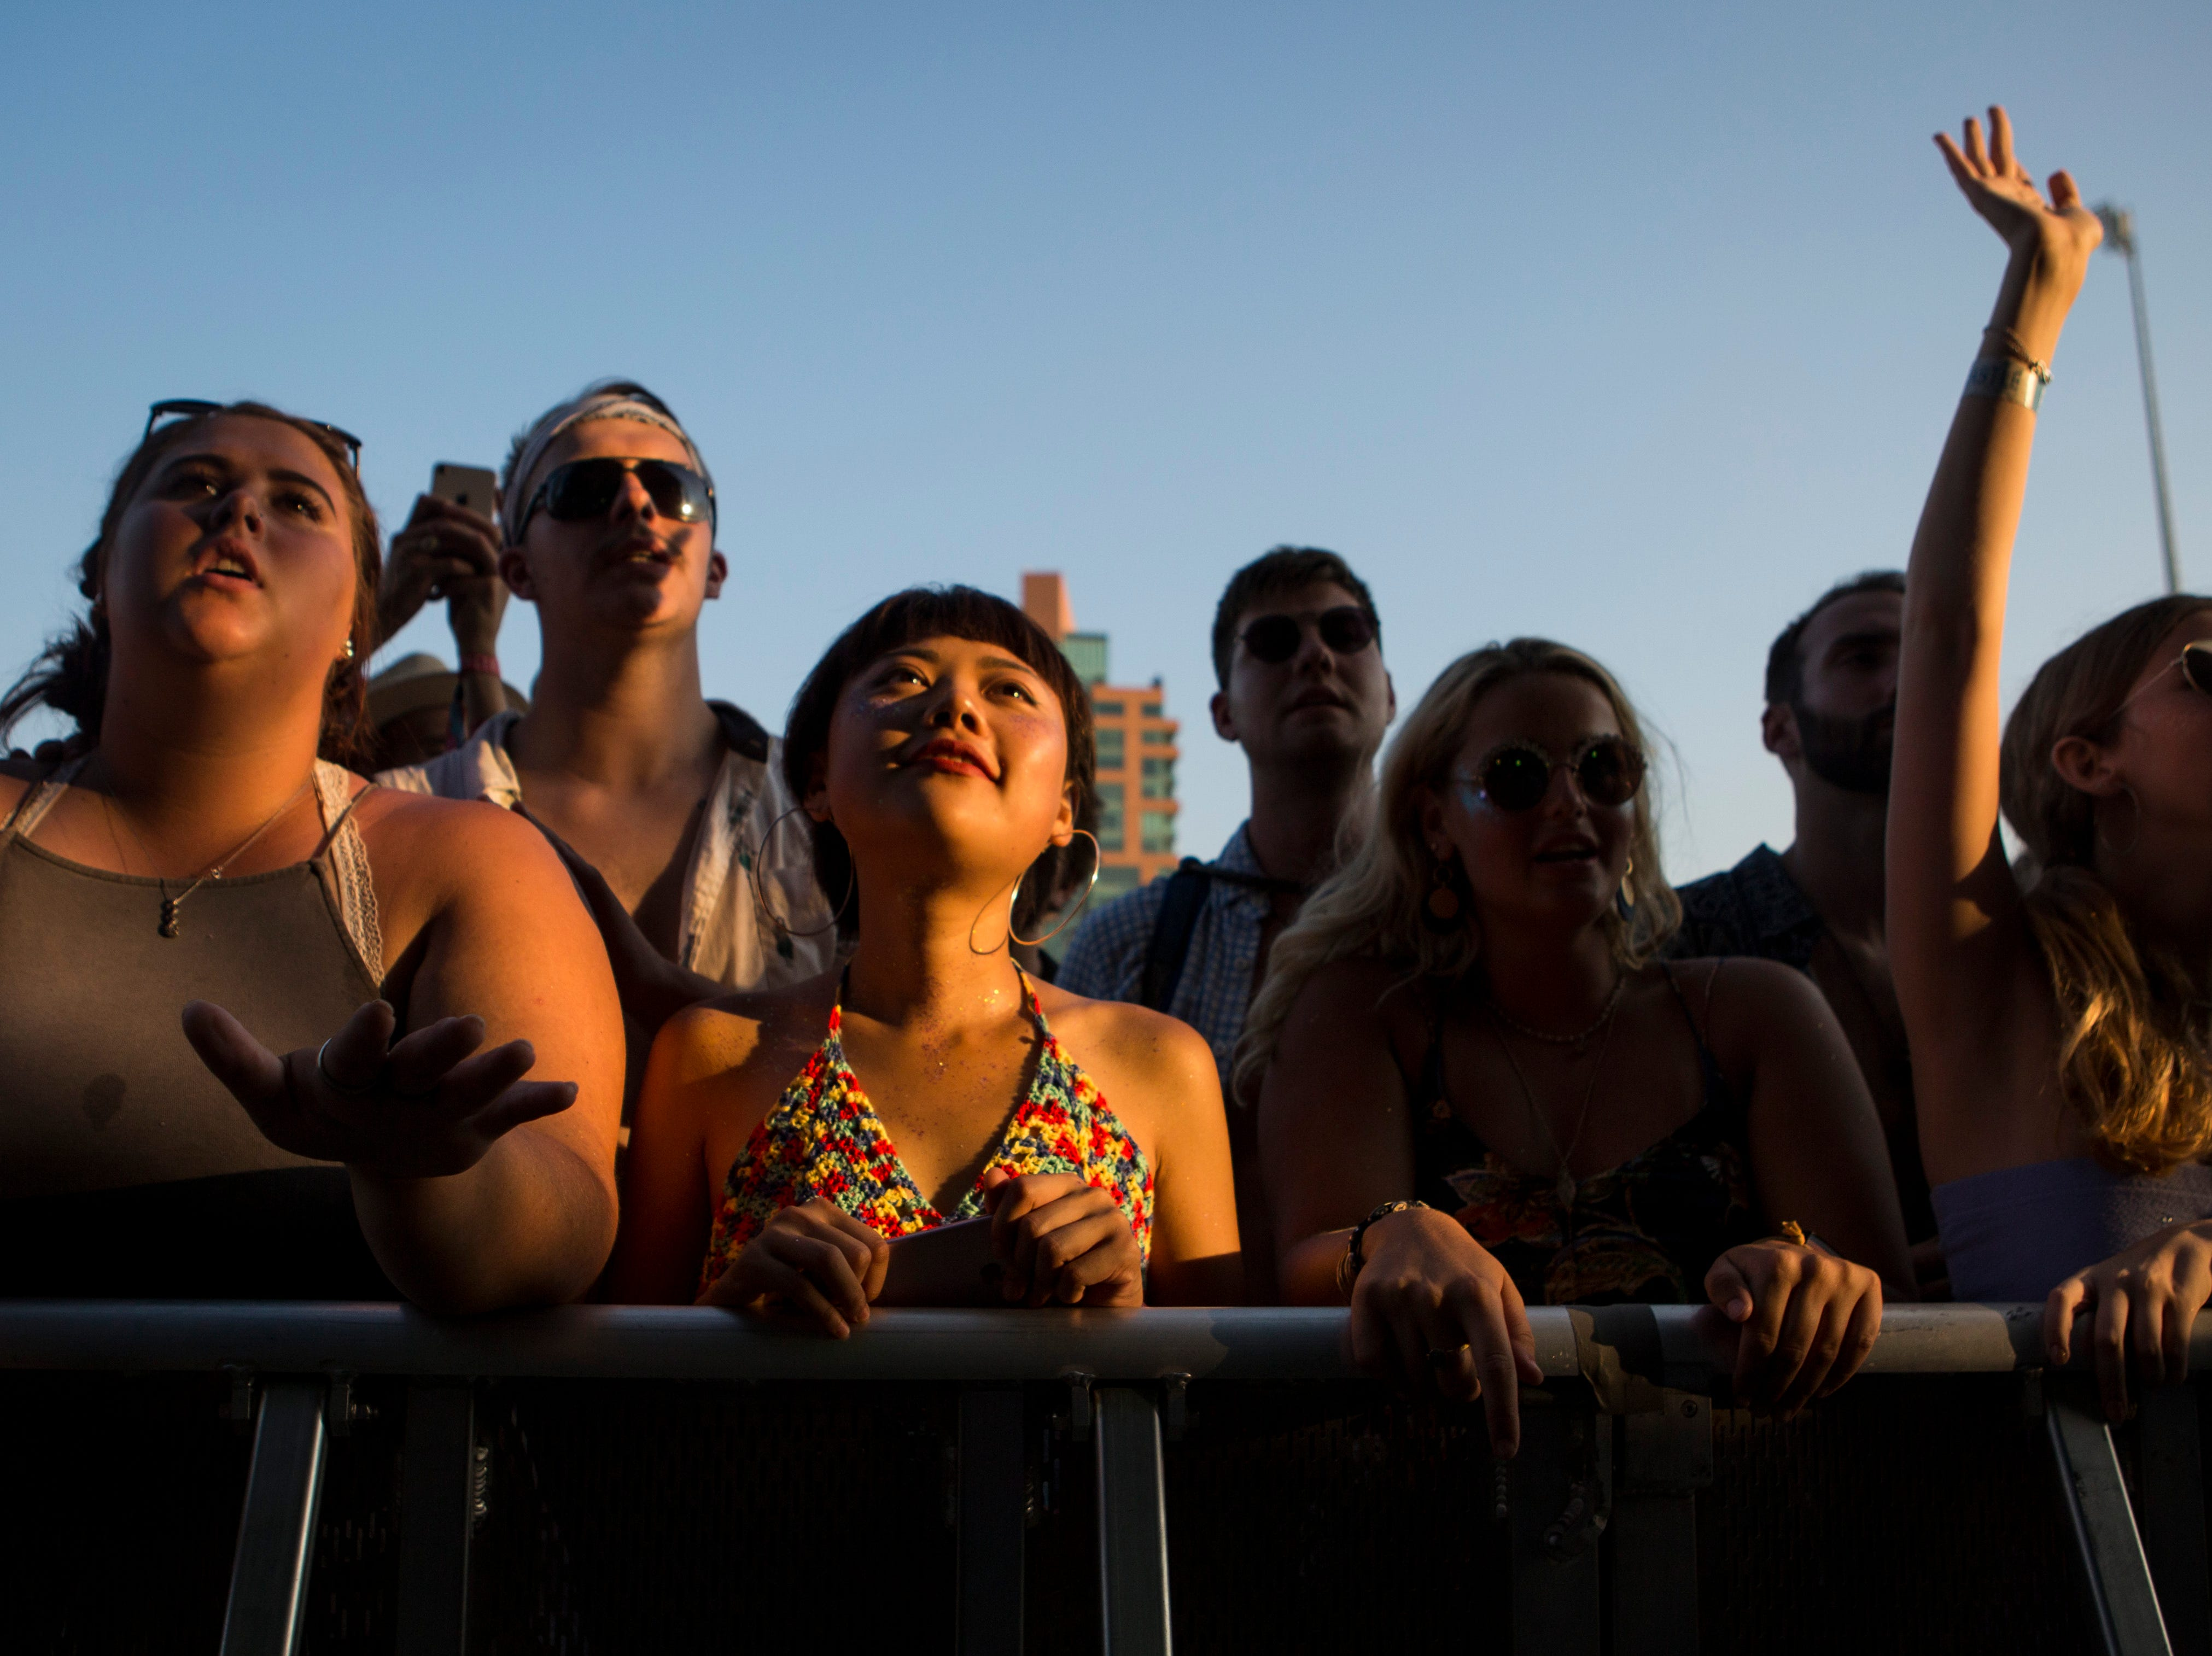 Forecastle Festival in Louisville: 2019 lineup includes The Killers, Anderson .Paak, Nelly